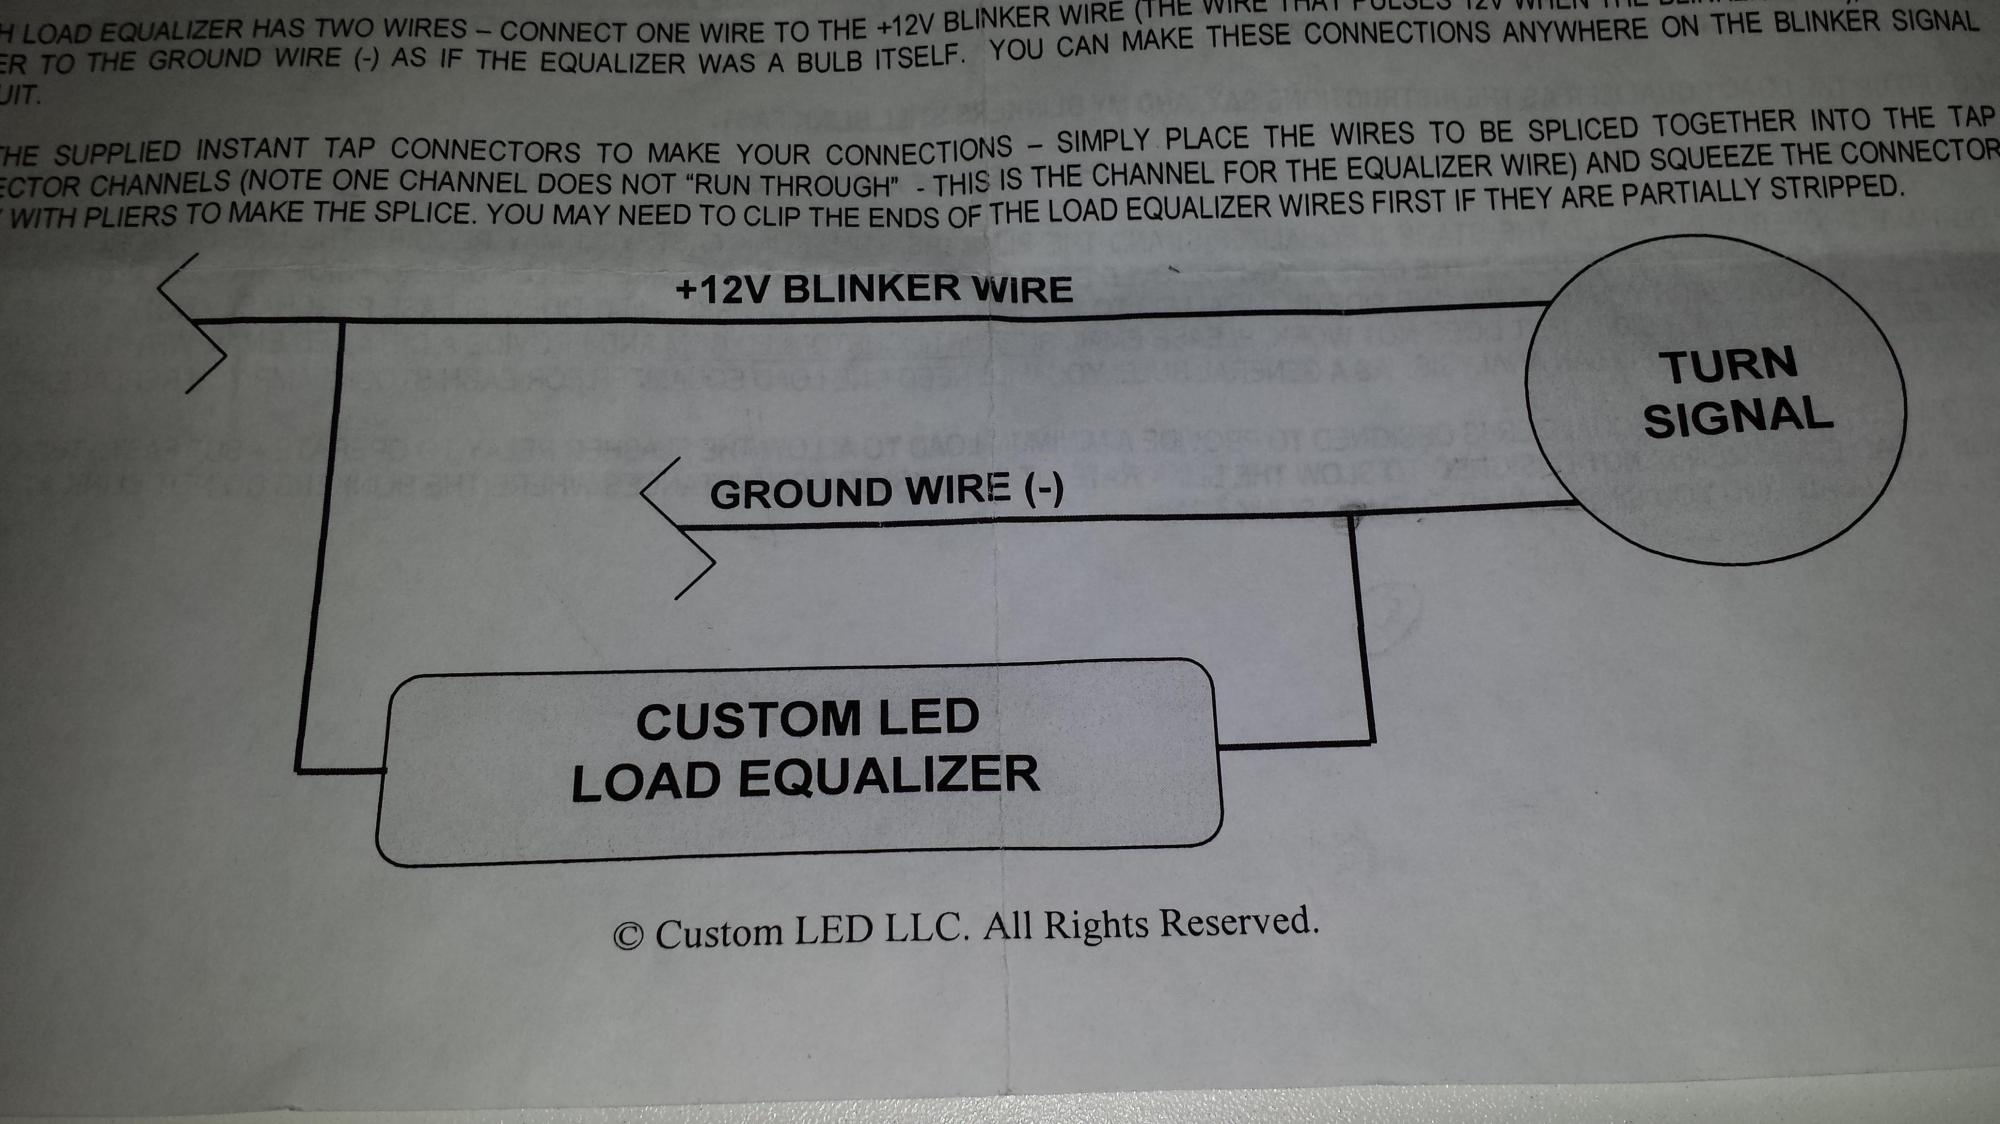 hight resolution of integrated led tail light wiring 1198s ducati org forum the ducati led tail light wiring diagram